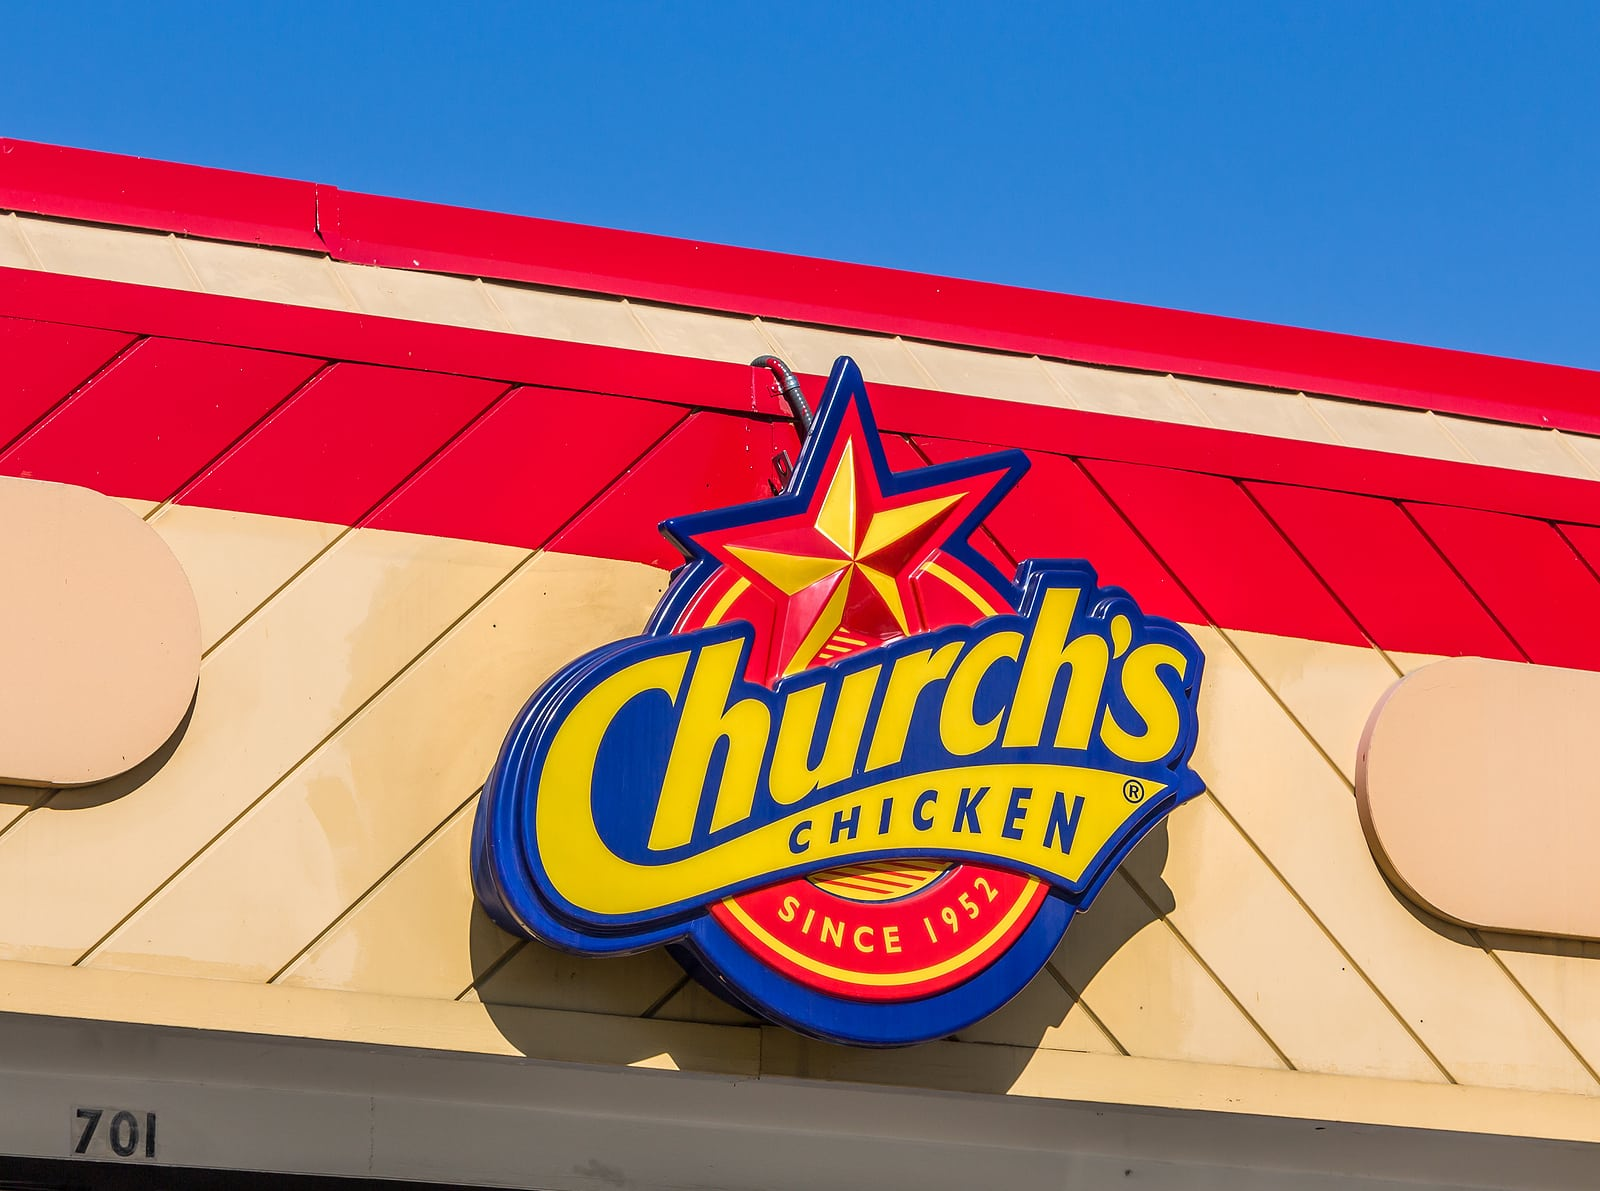 Texas Chicken™ And Church's Texas Chicken™ Appoints New Leadership